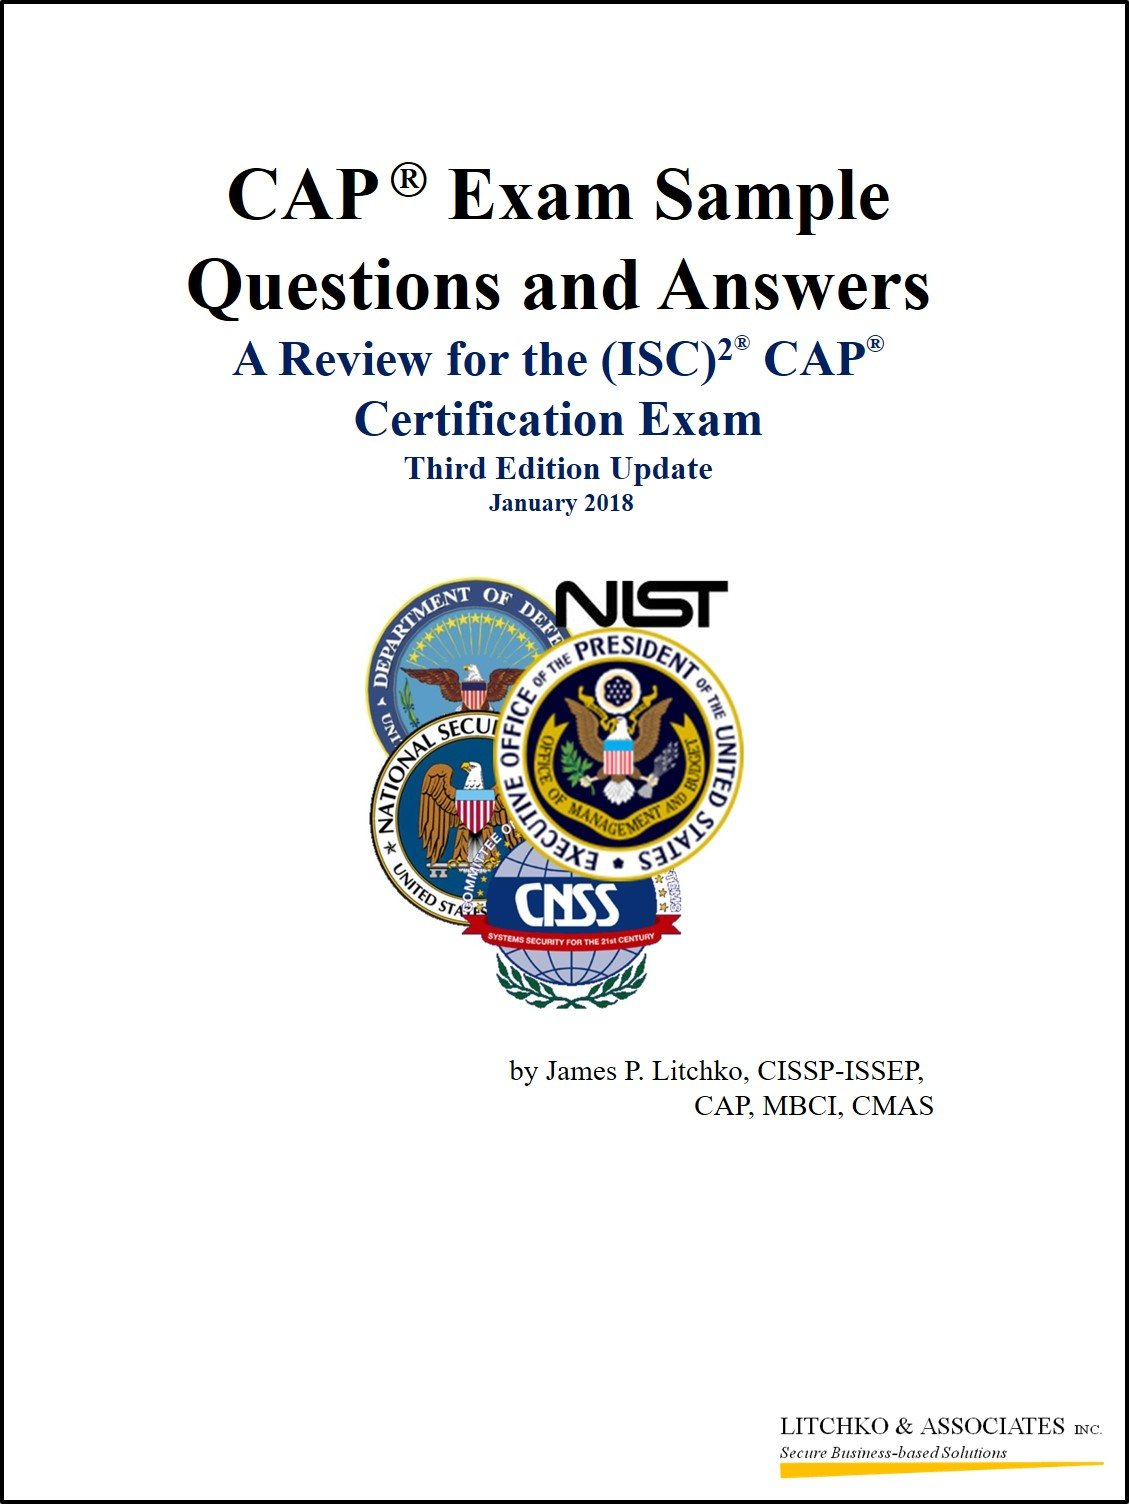 Cap Exam Sample Questions And Answers Review For The Isc2 Cap